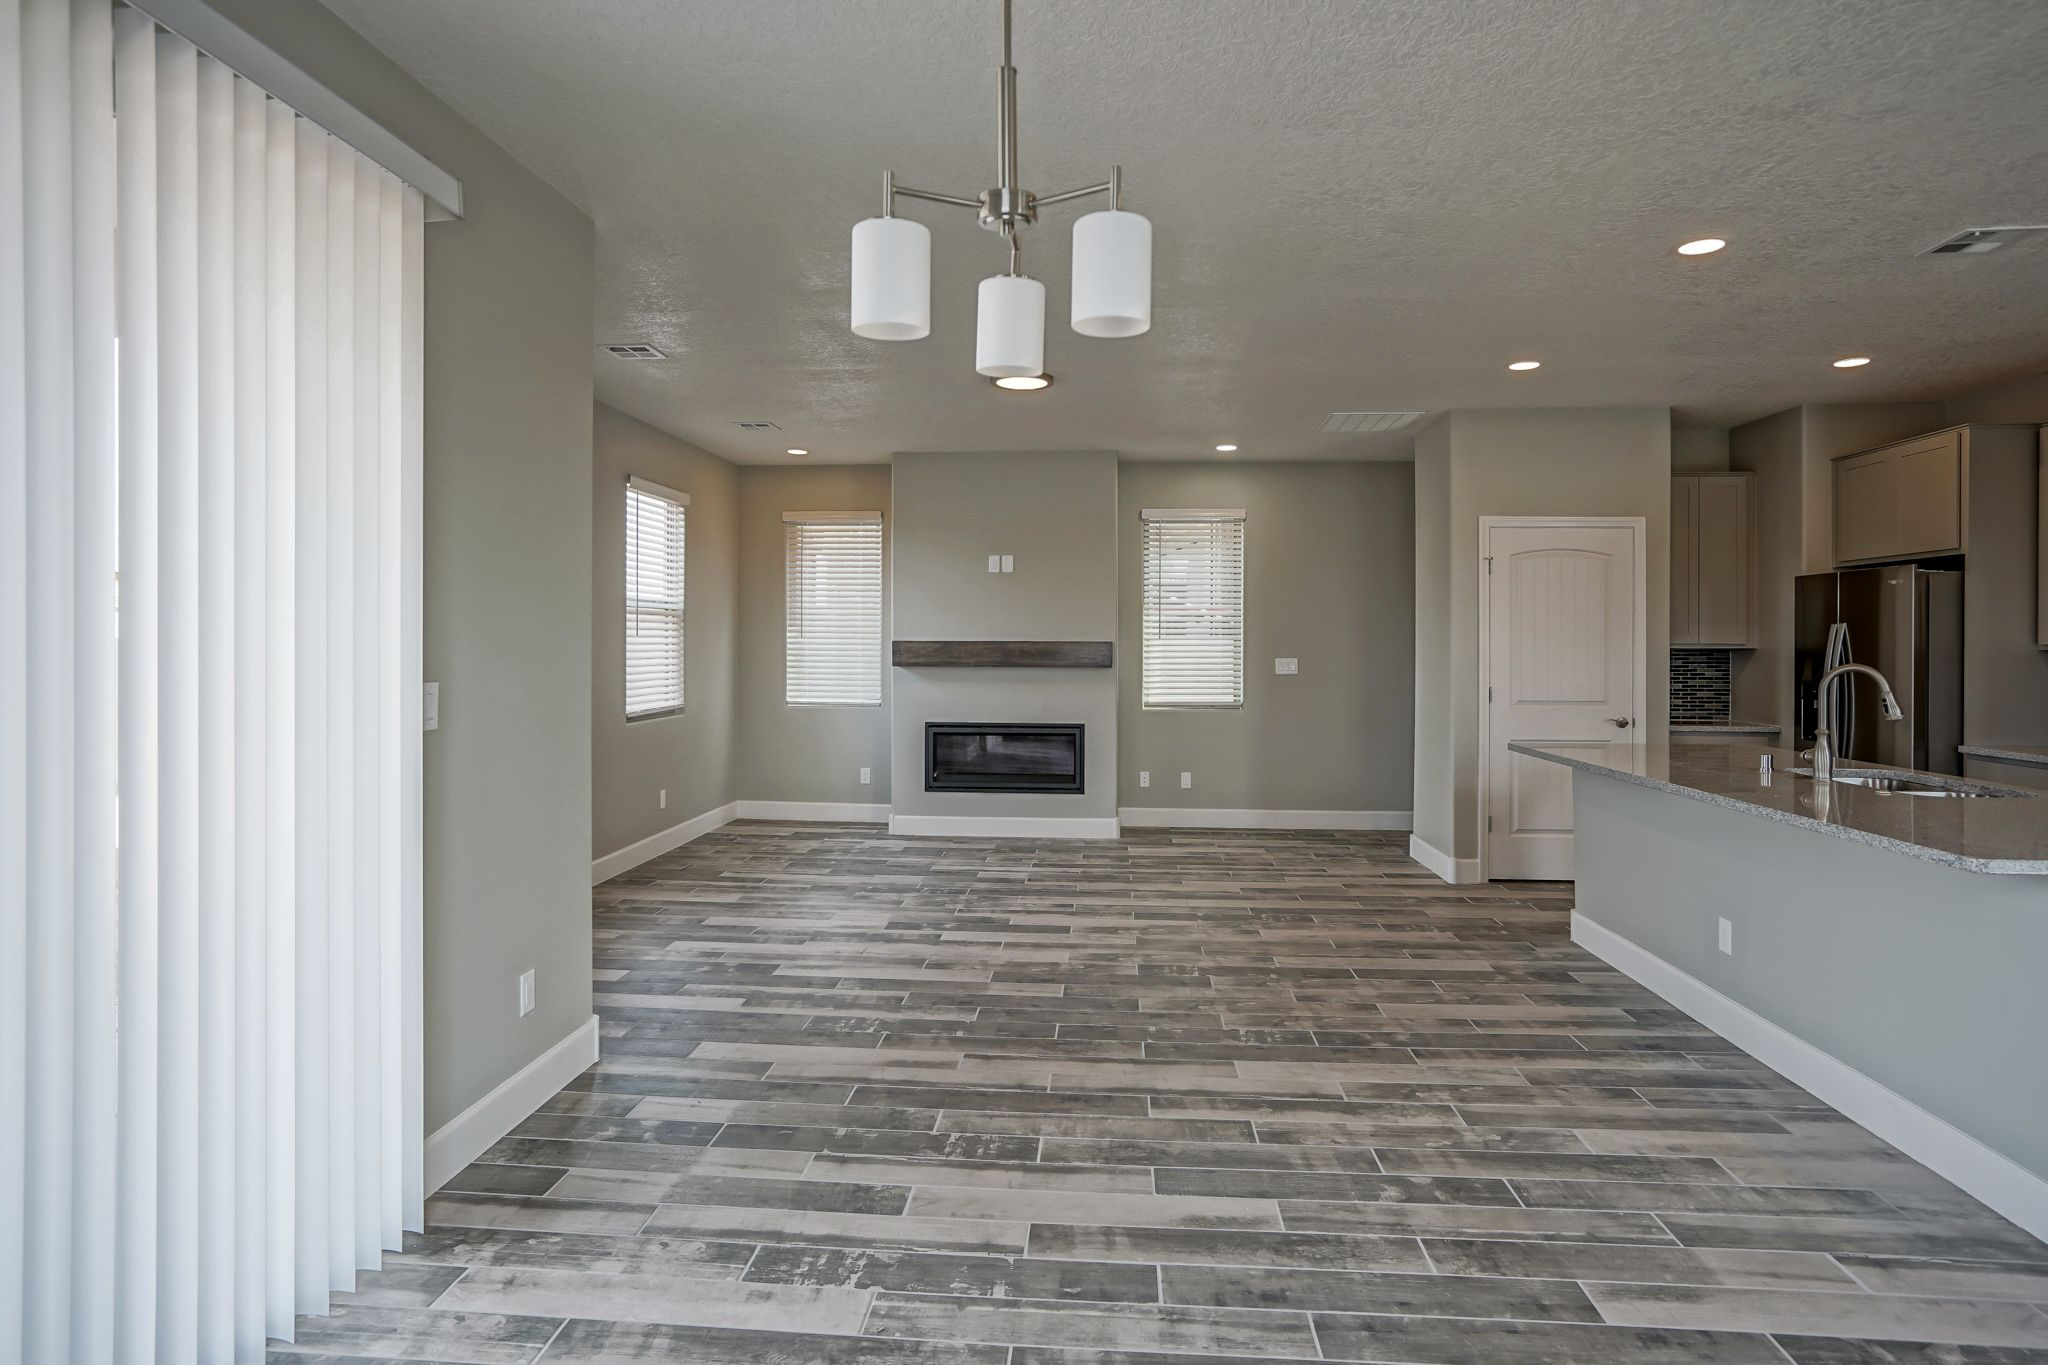 Living Area featured in the Loreto By Abrazo Homes in Albuquerque, NM